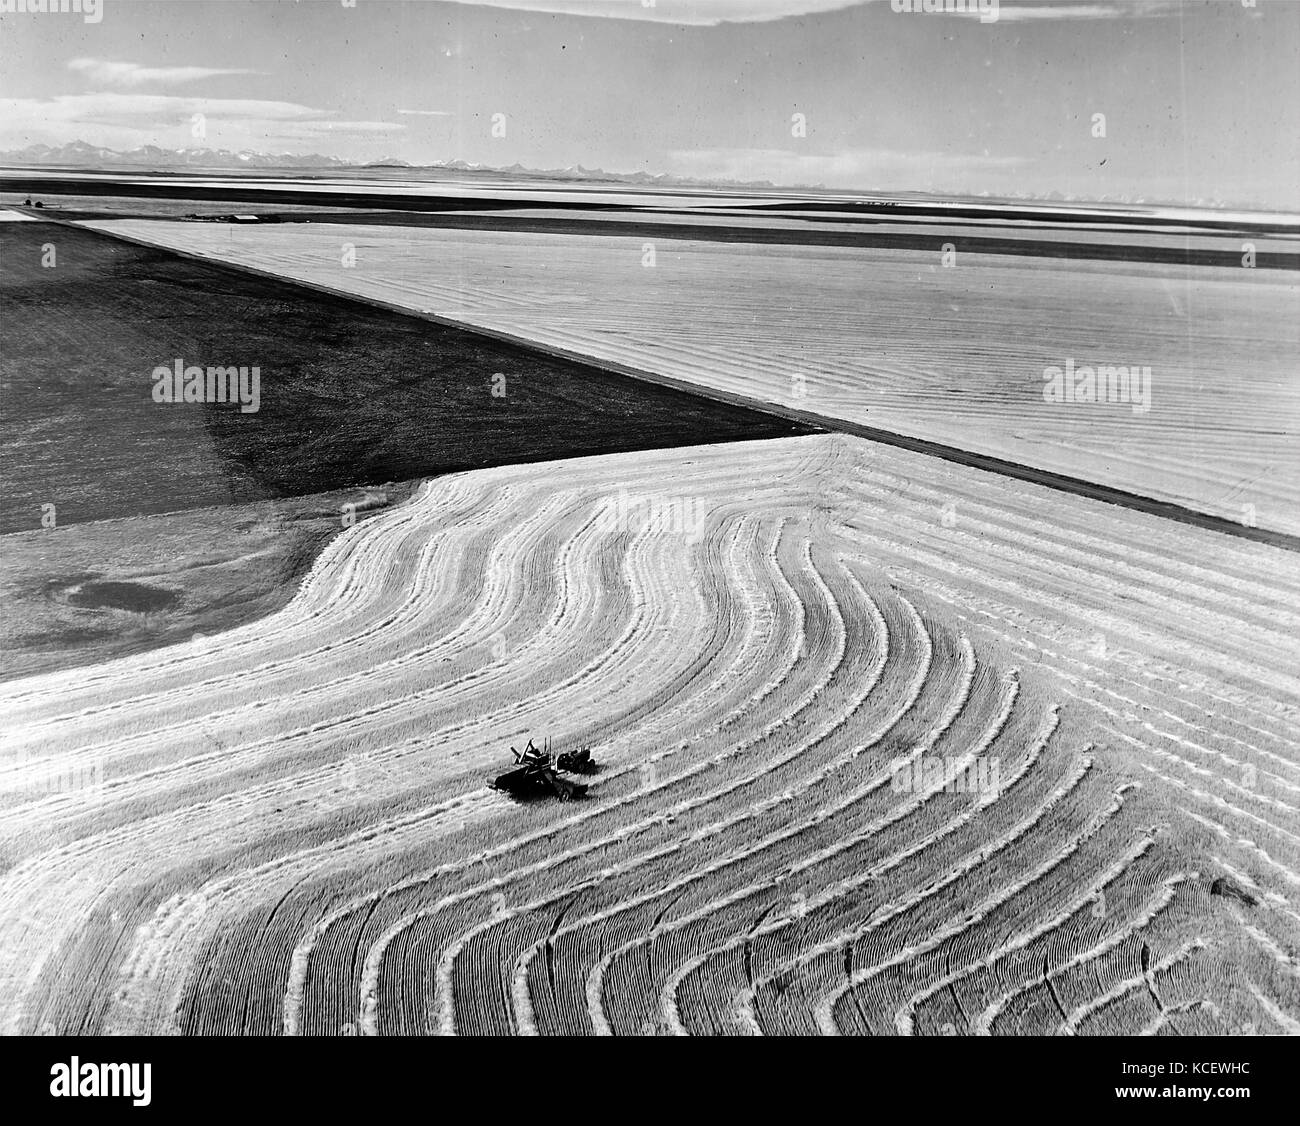 Photograph depicting wheat fields in Alberta with the Rocky Mountains in the background. Dated 20th Century - Stock Image